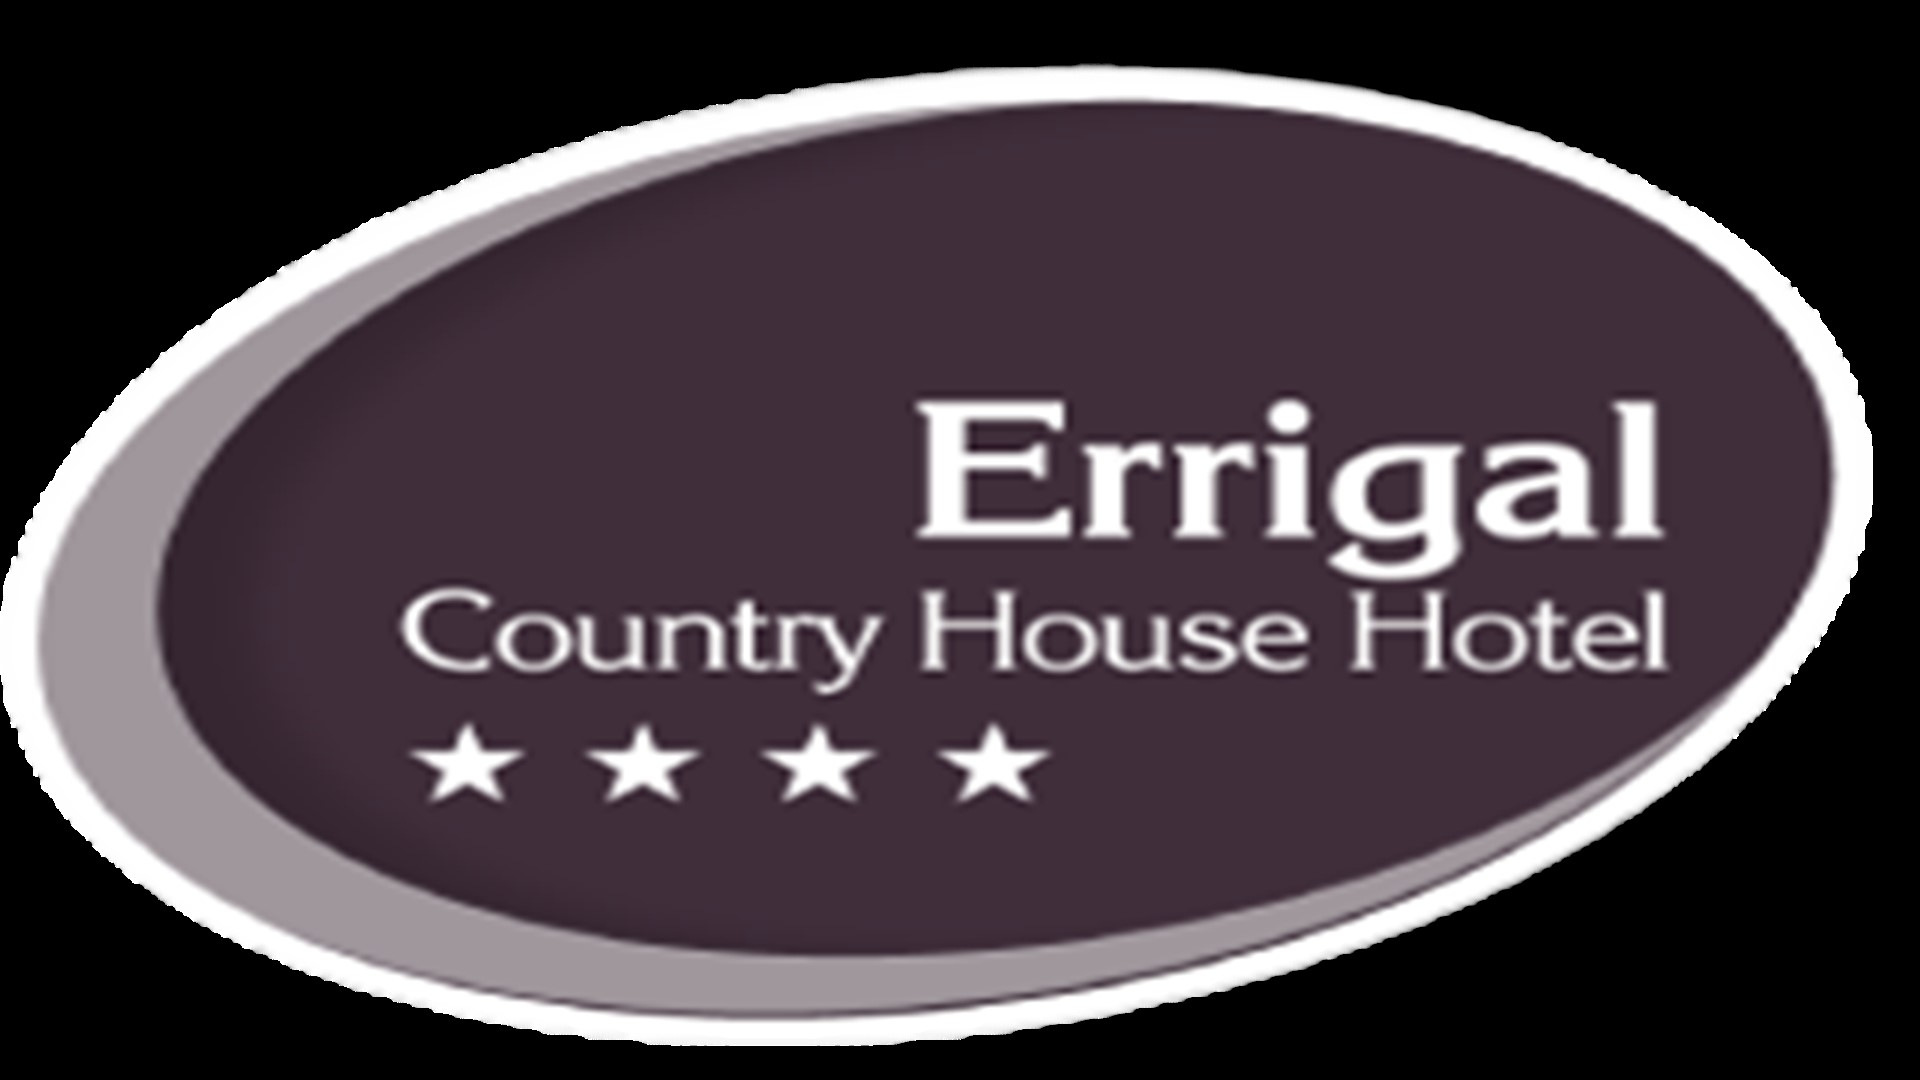 Errigal Country House Hotel (@errigalhotel) Cover Image